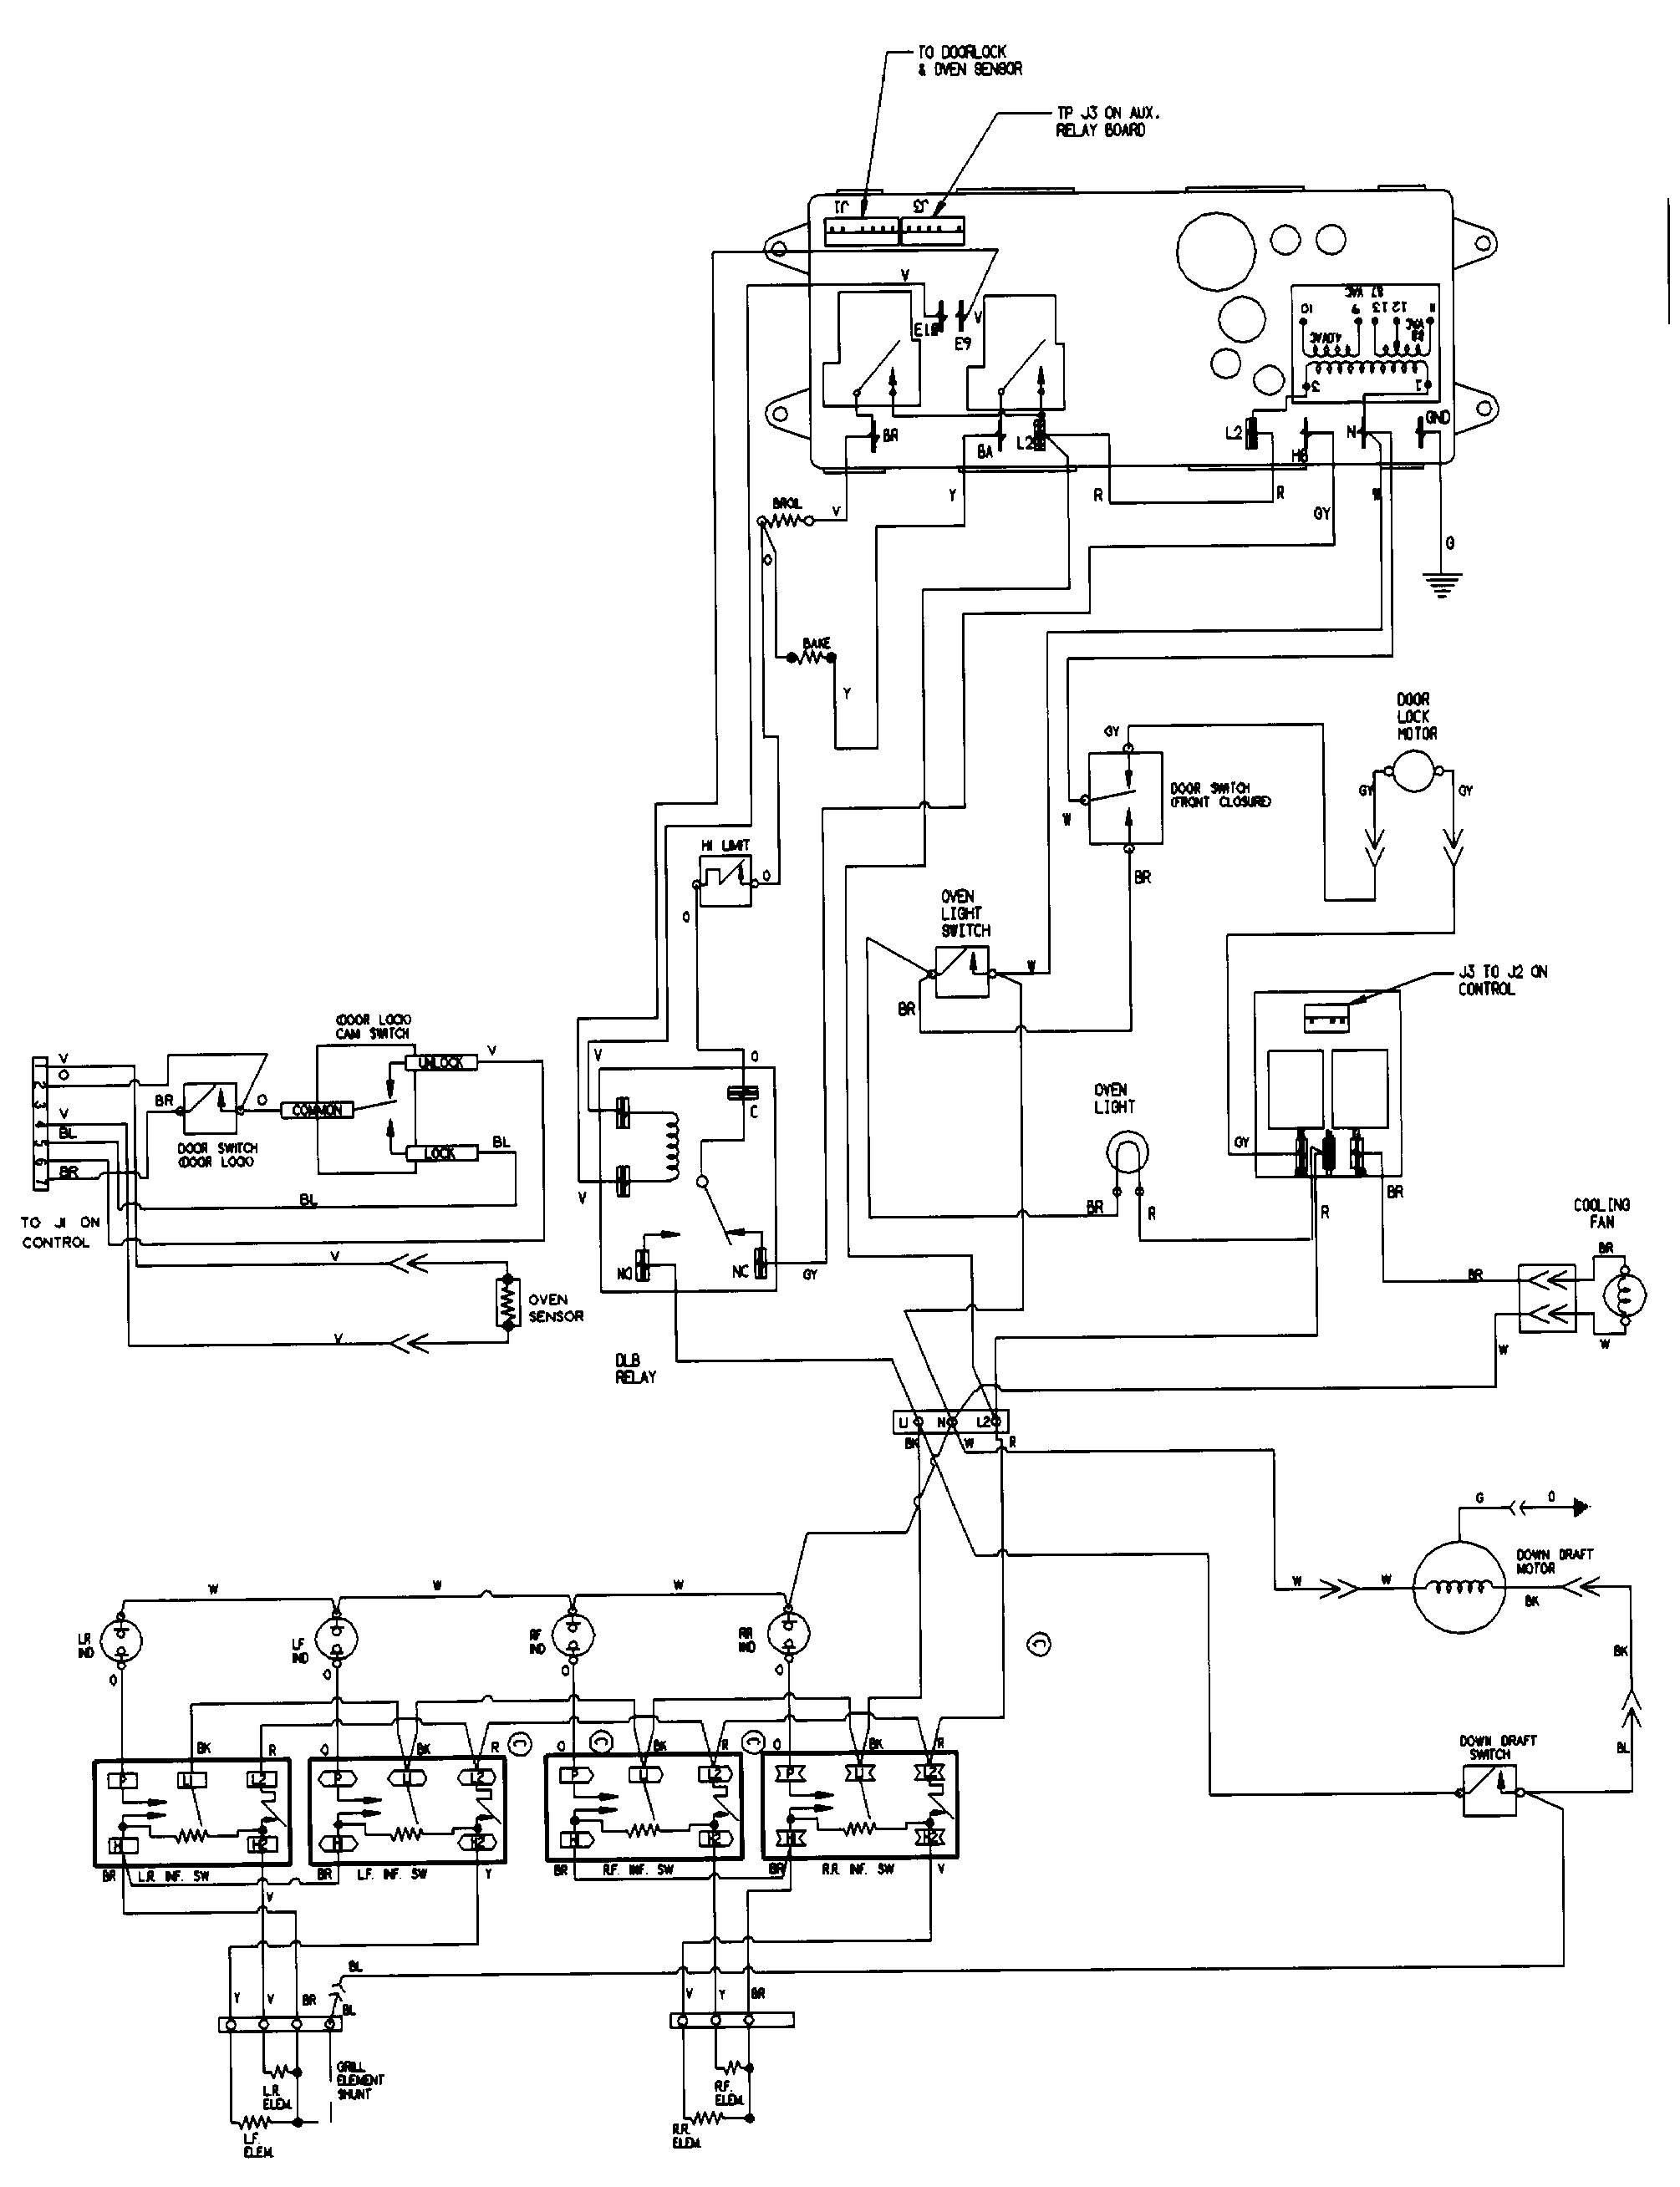 electric stove wiring diagram yamaha outboard ignition jenn air sve47100w slide in range timer